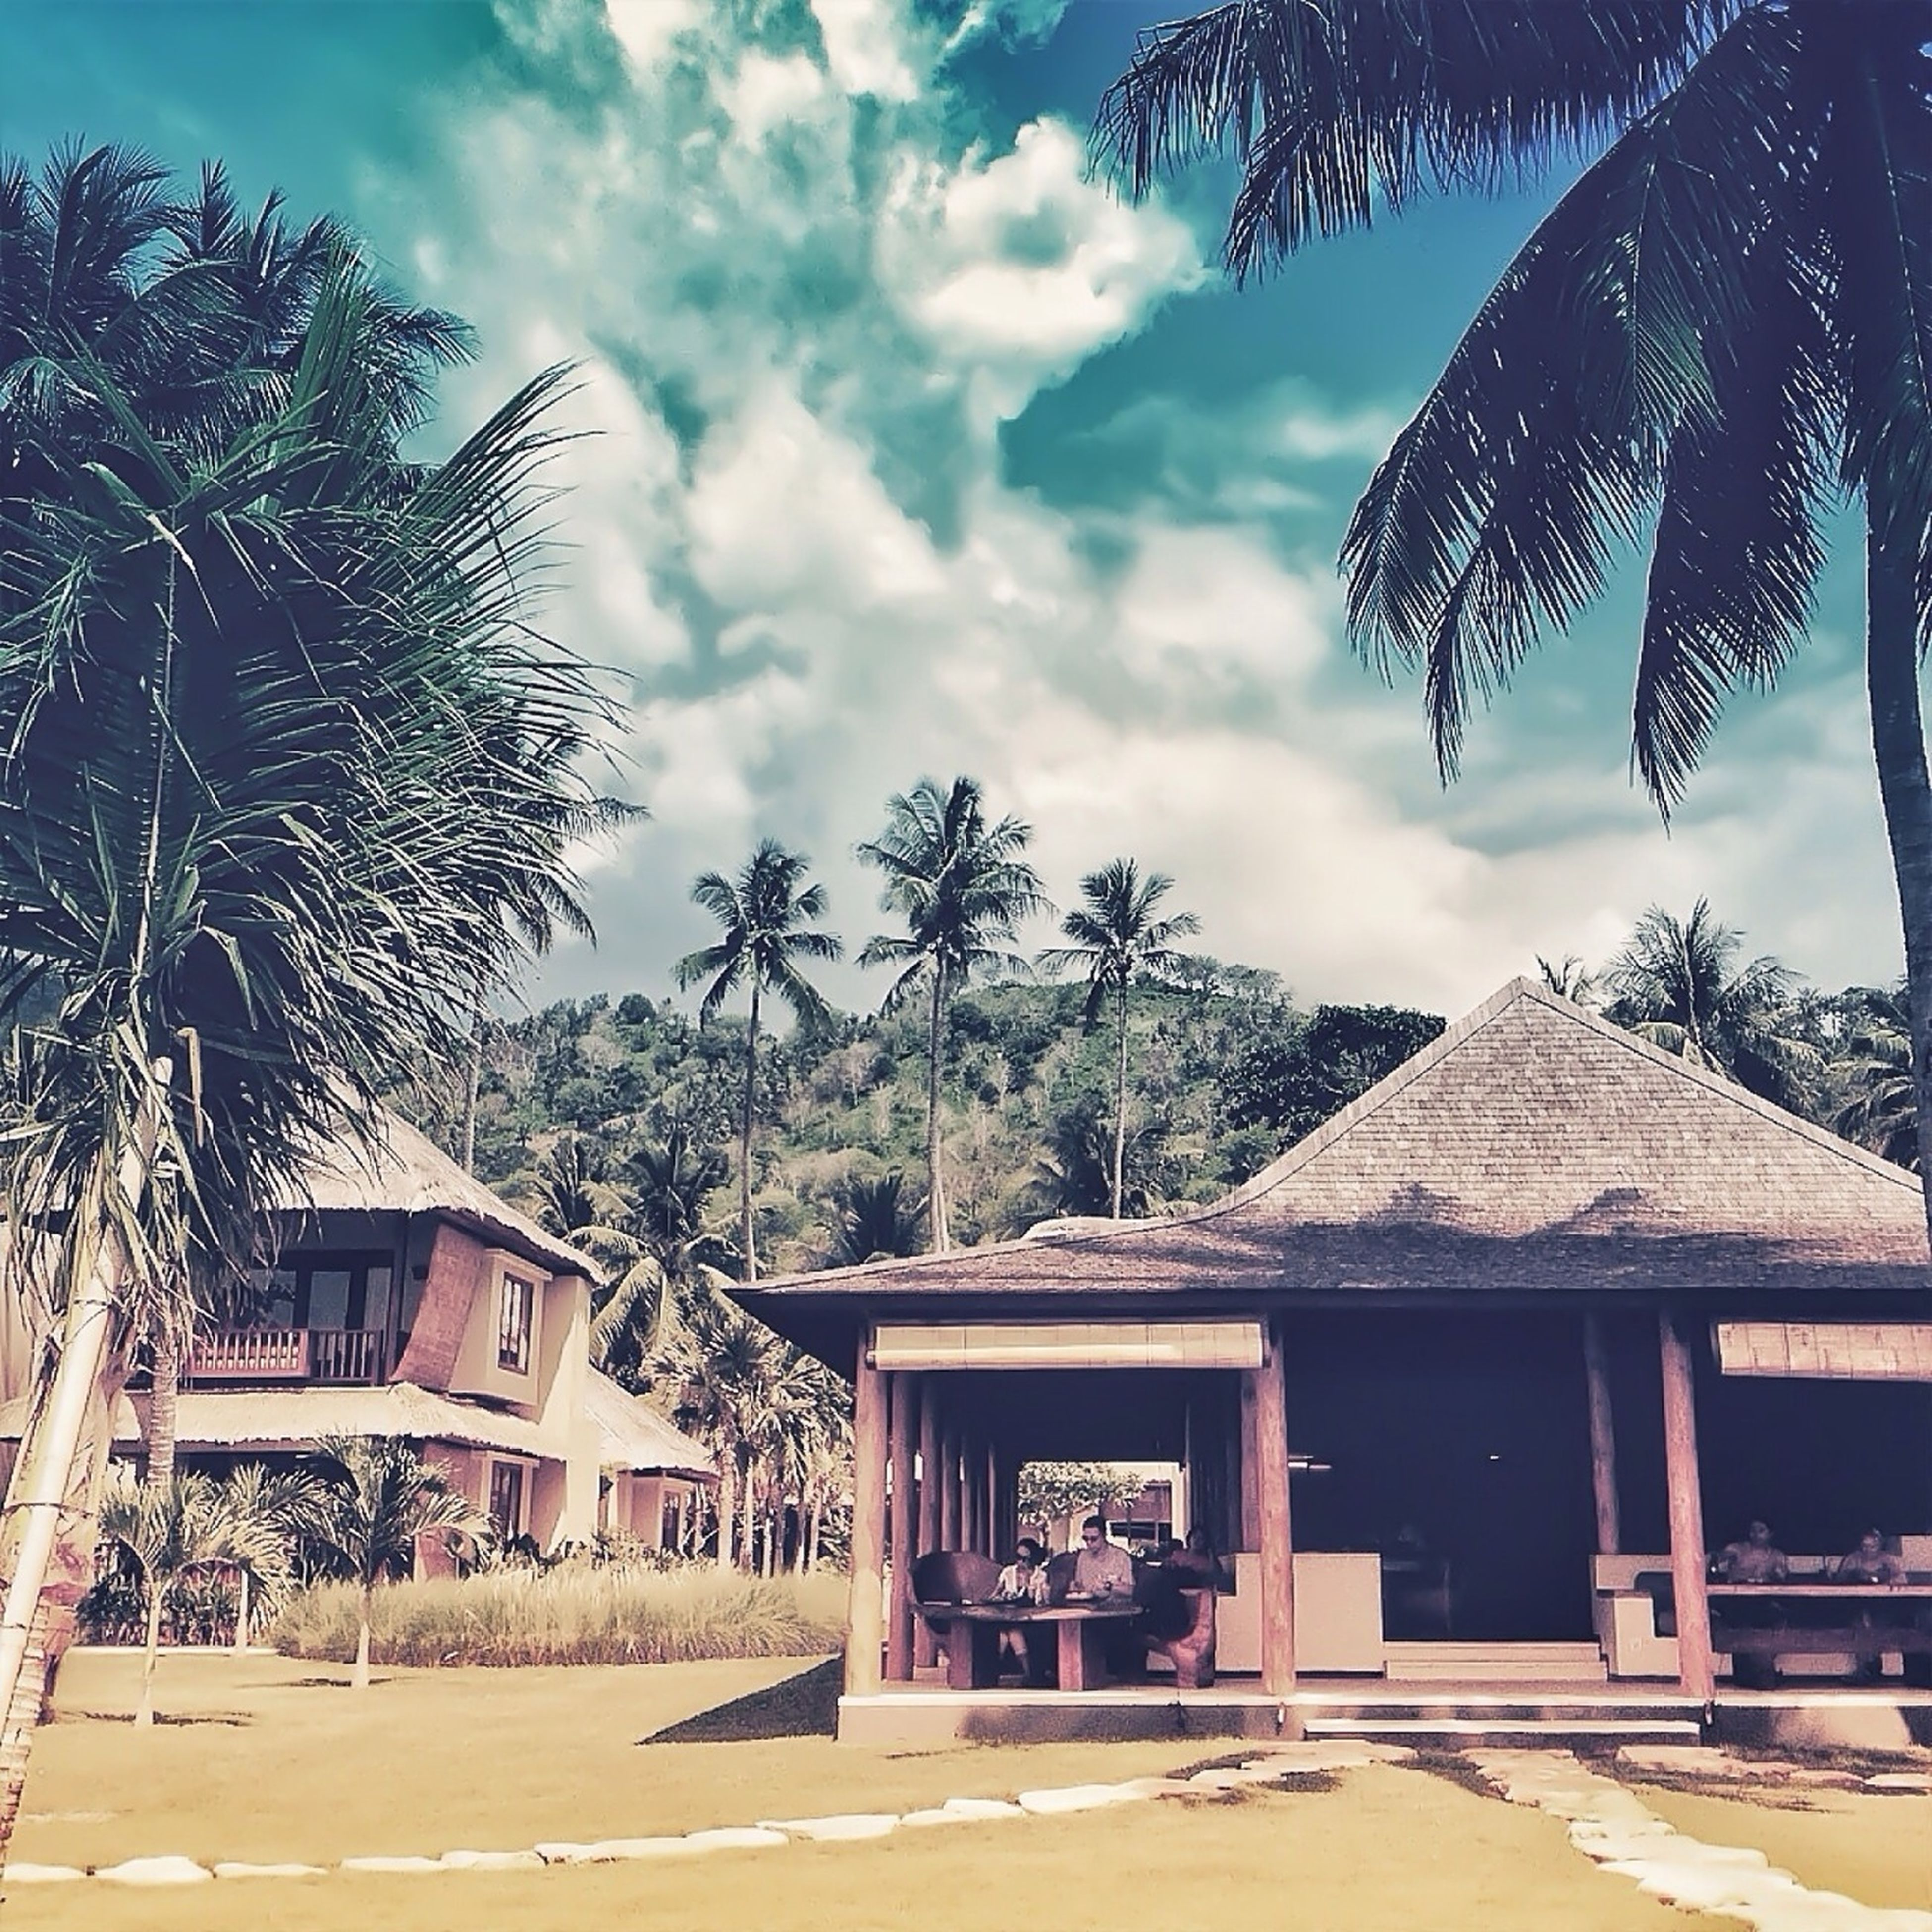 building exterior, architecture, built structure, house, sky, tree, residential structure, residential building, cloud - sky, roof, cloud, sunlight, day, outdoors, village, town, palm tree, hut, cloudy, nature